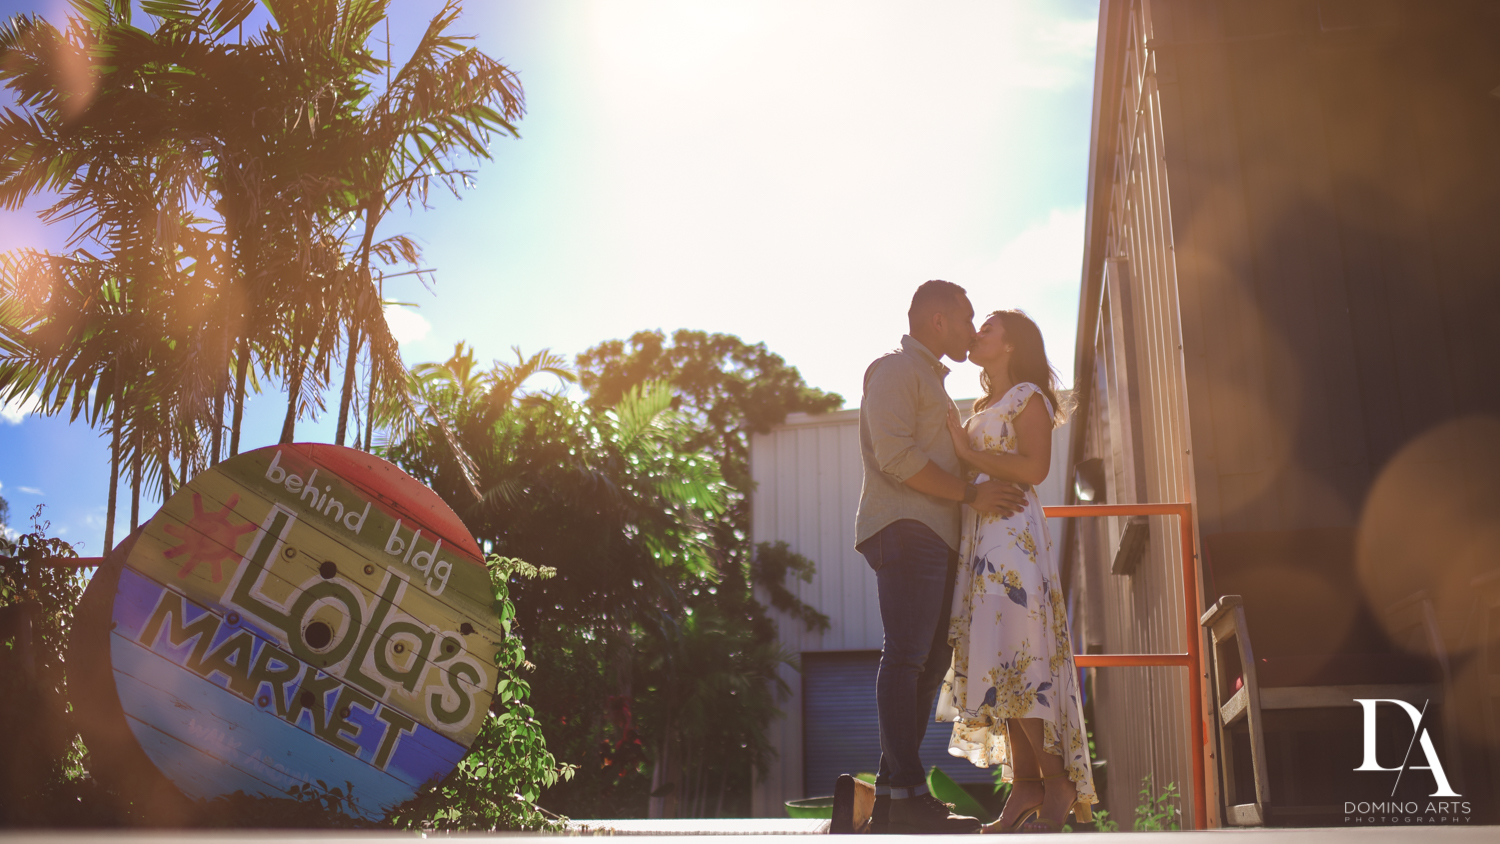 silhouette at Romantic Engagement Session at Graffiti Walls by Domino Arts Photography